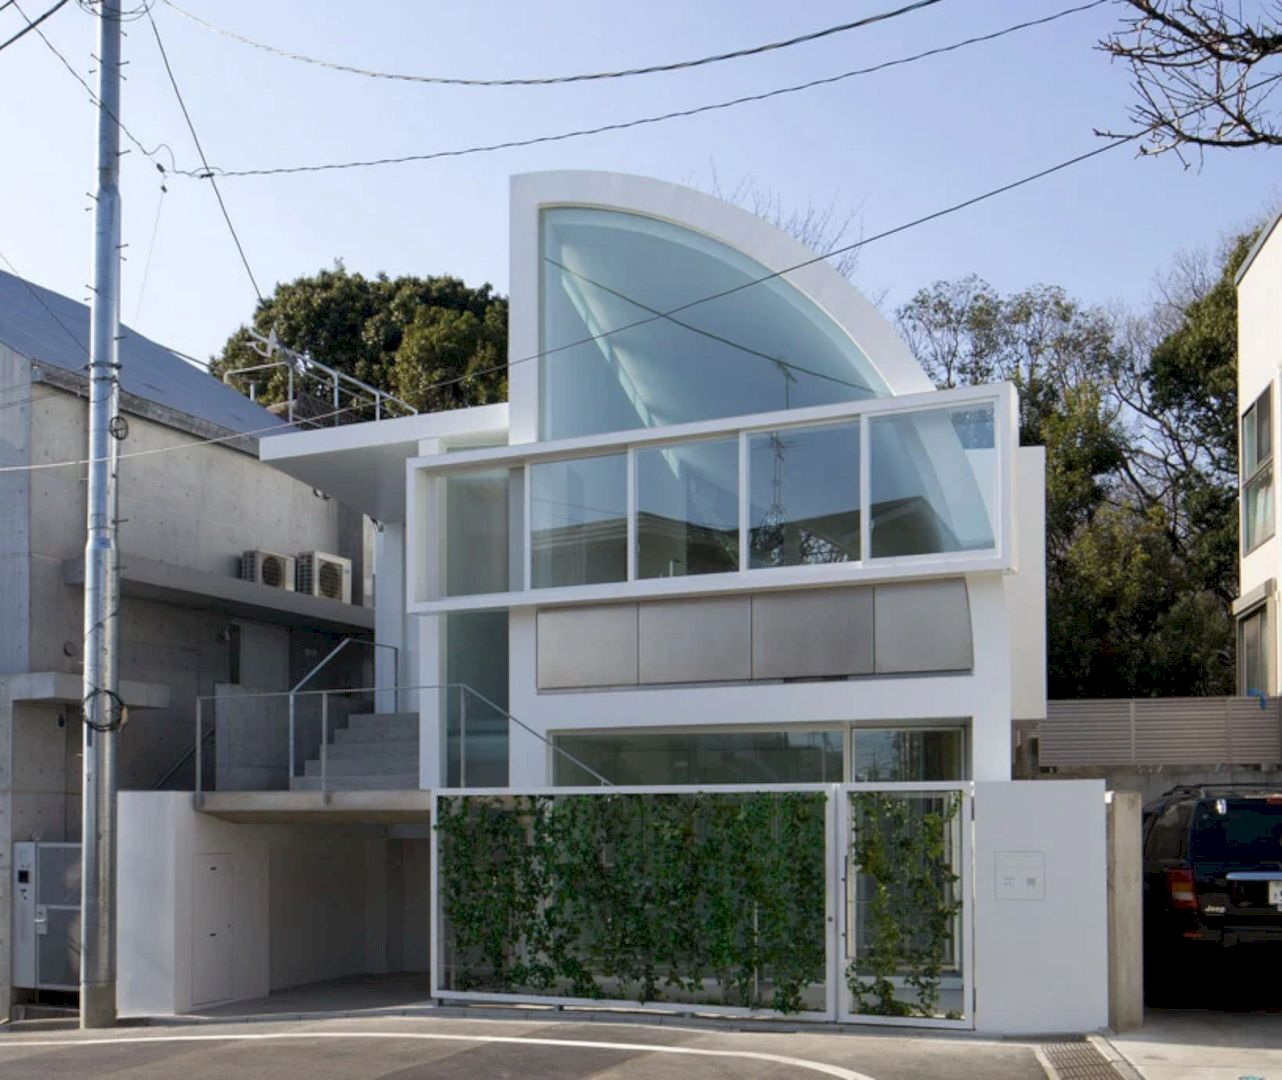 House At Hanegi Park By Shigeru Ban Architects 7